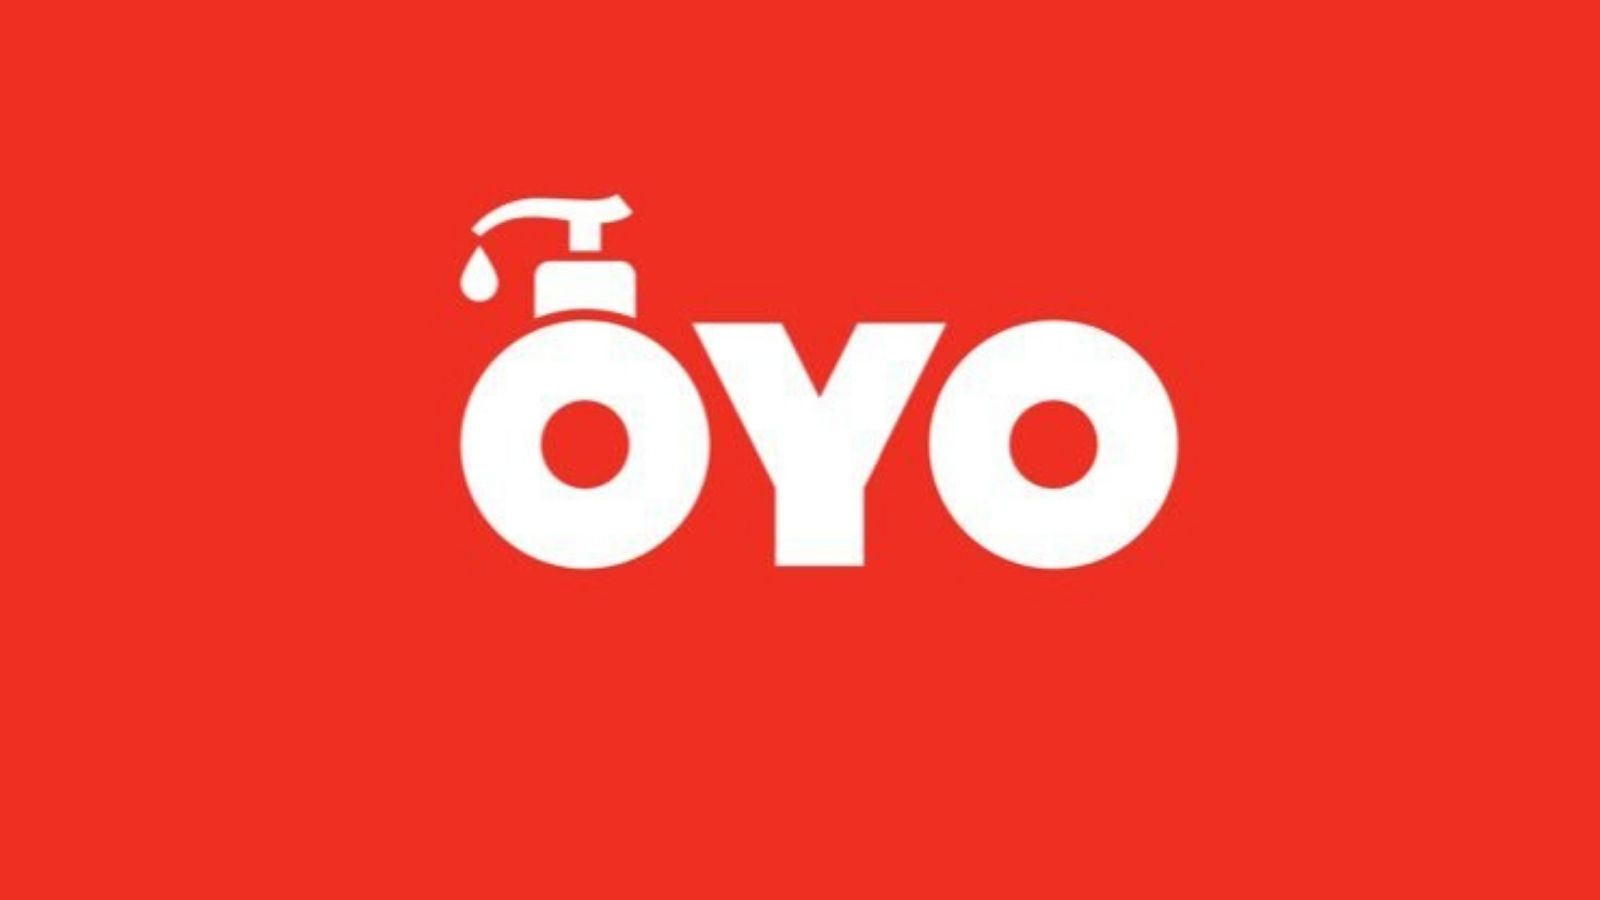 Oyo In Red Logo